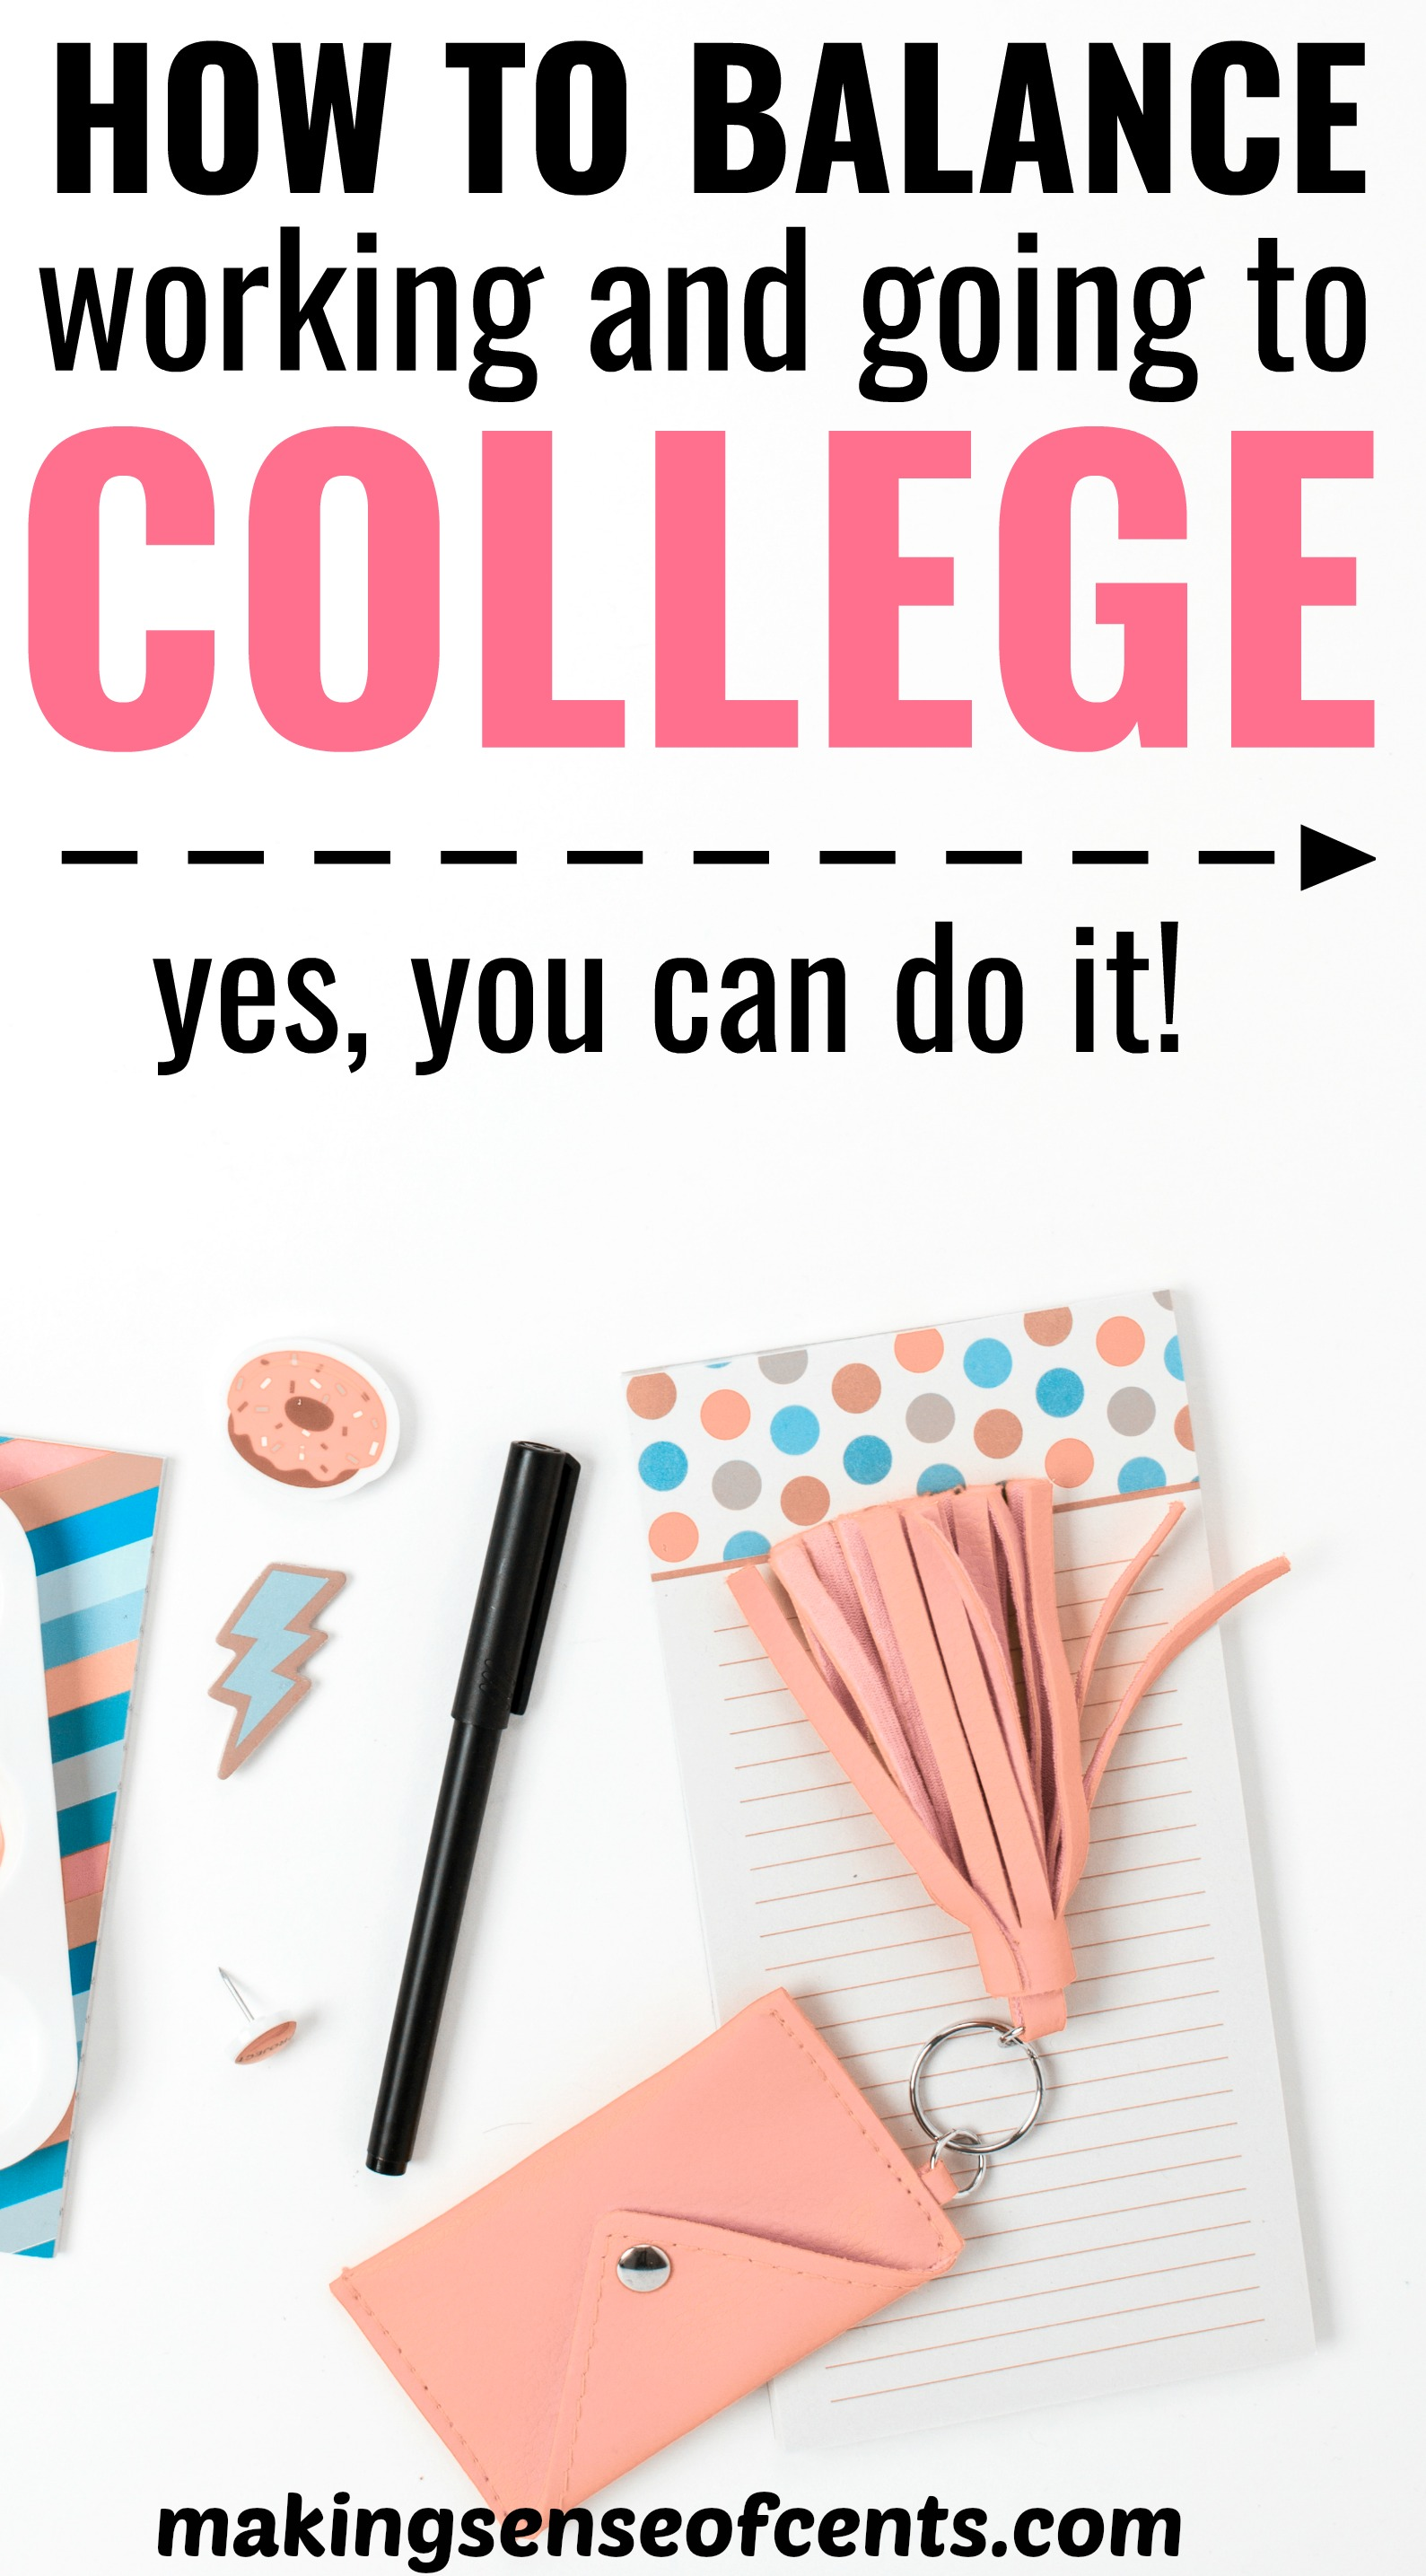 5 Tips For Working Students In College